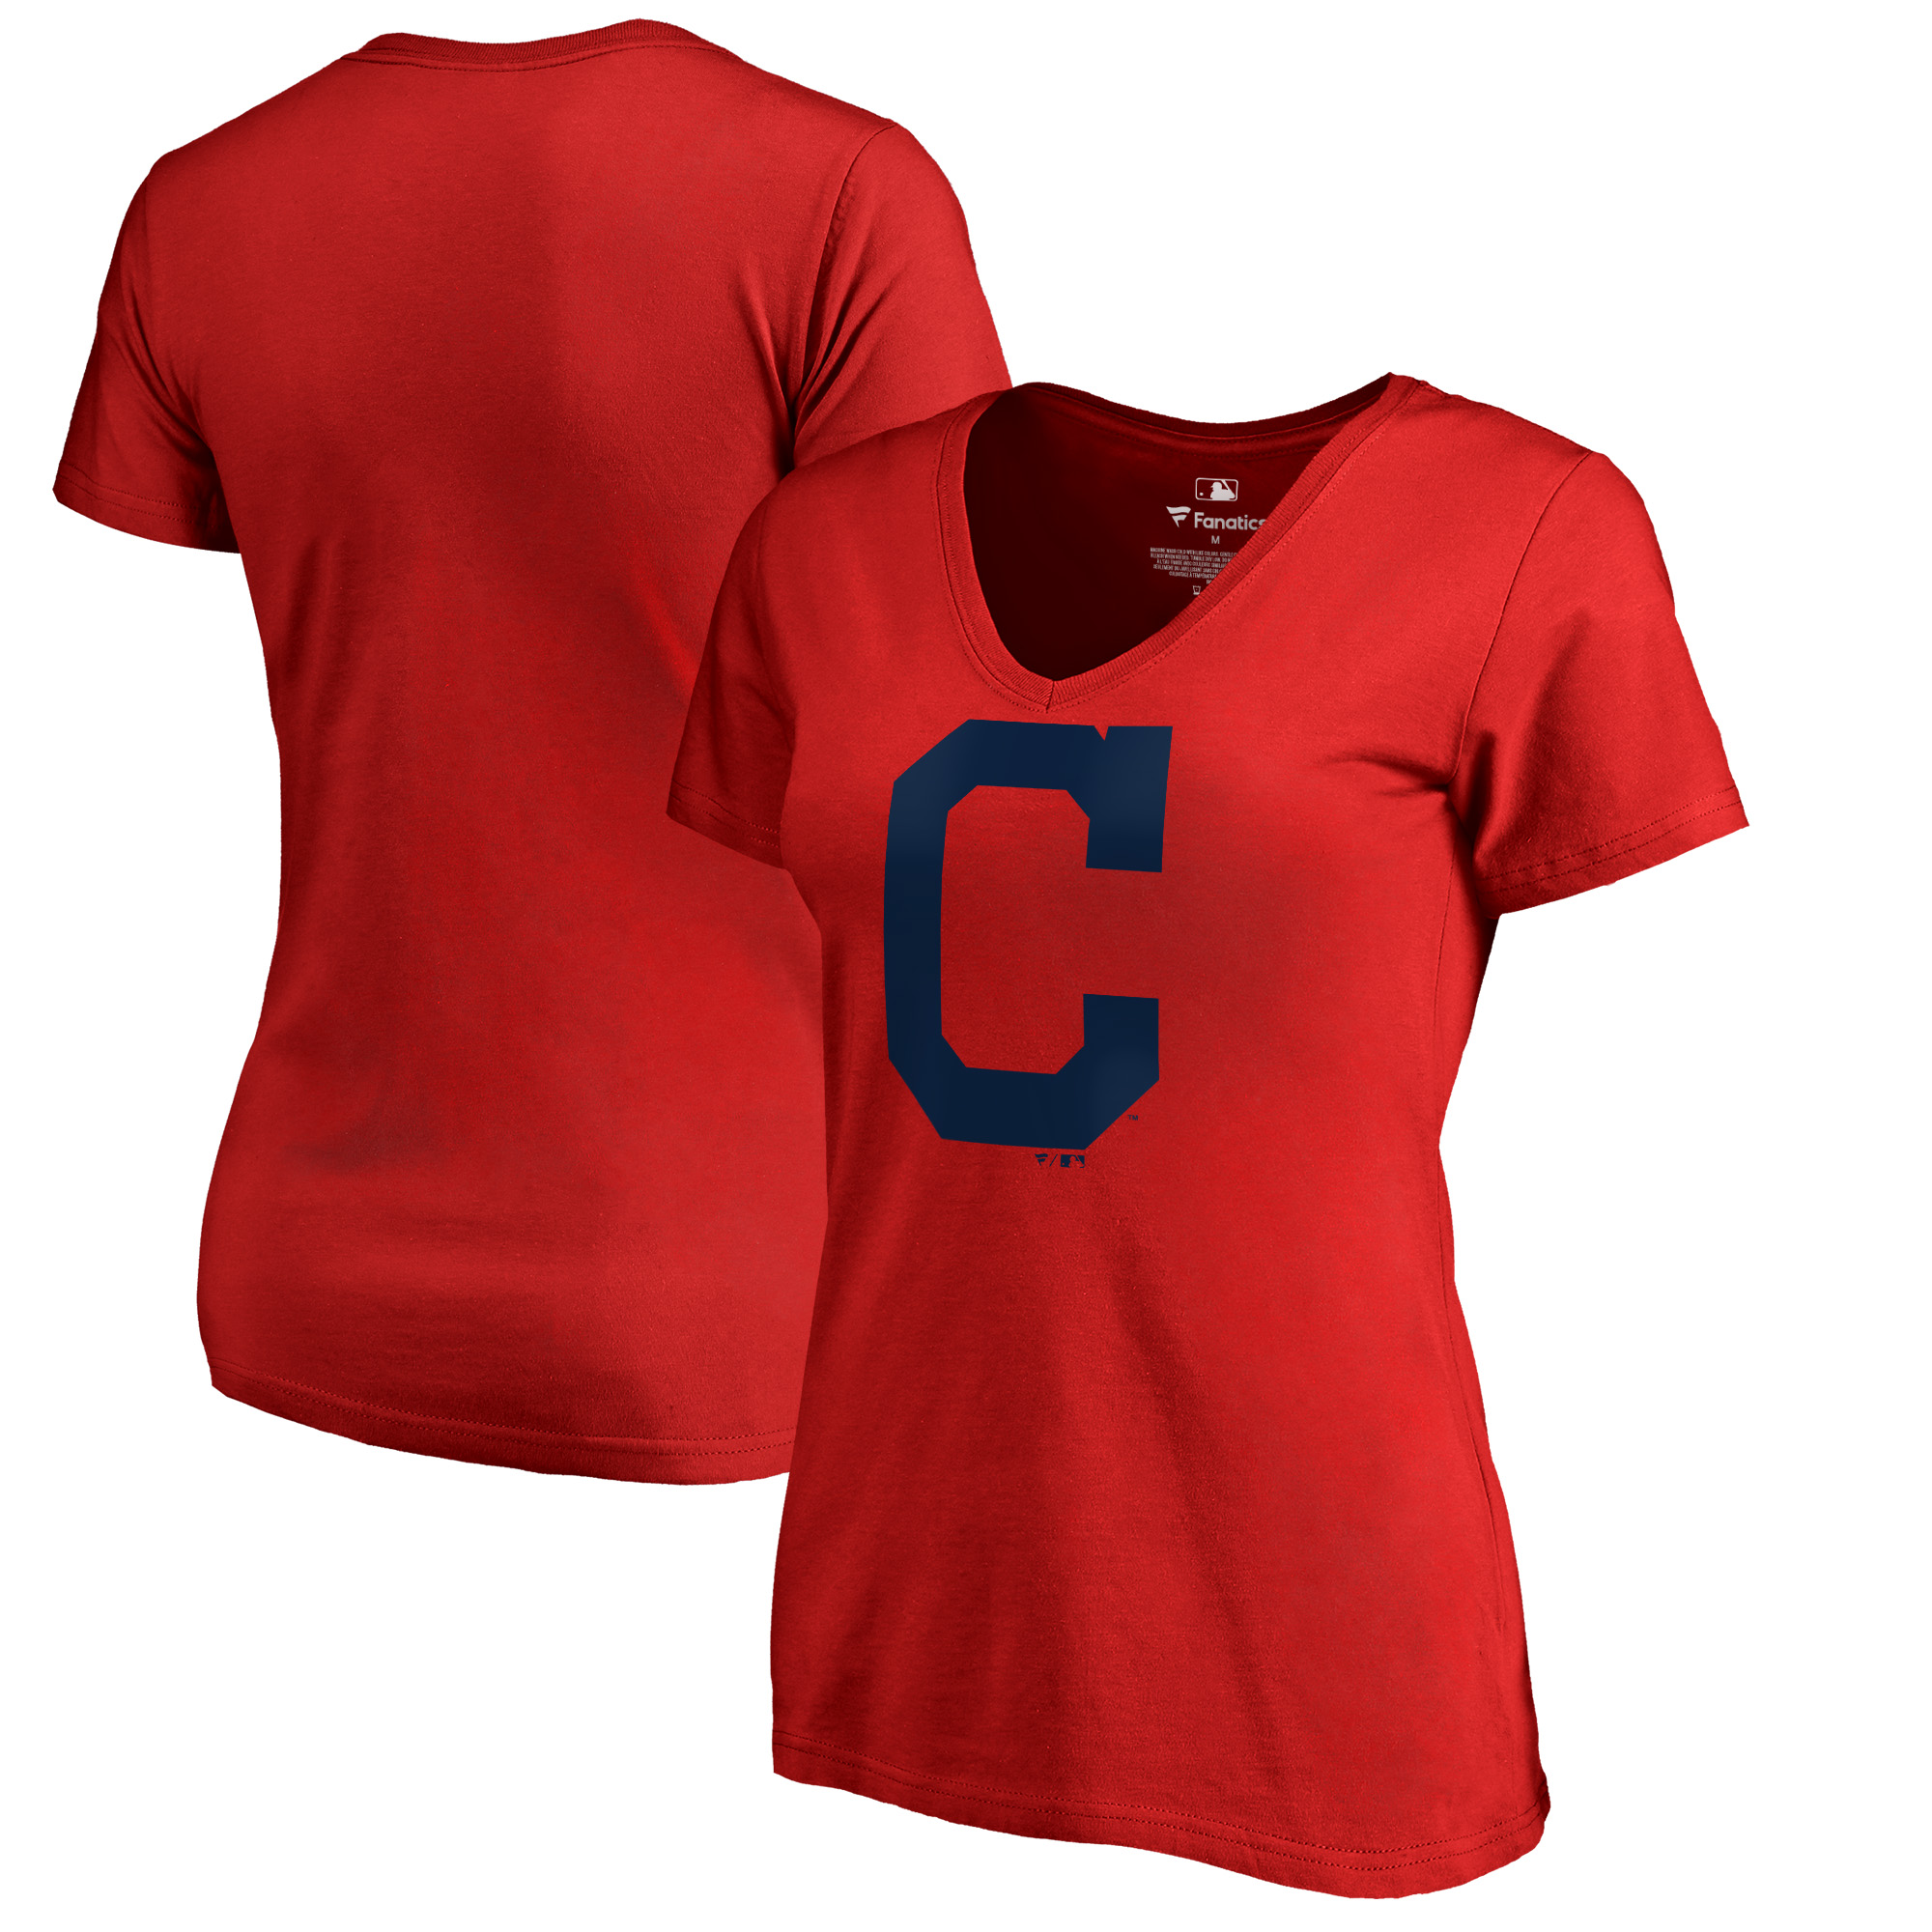 Cleveland Indians Women's Plus Sizes Primary Team Logo T-Shirt - Red